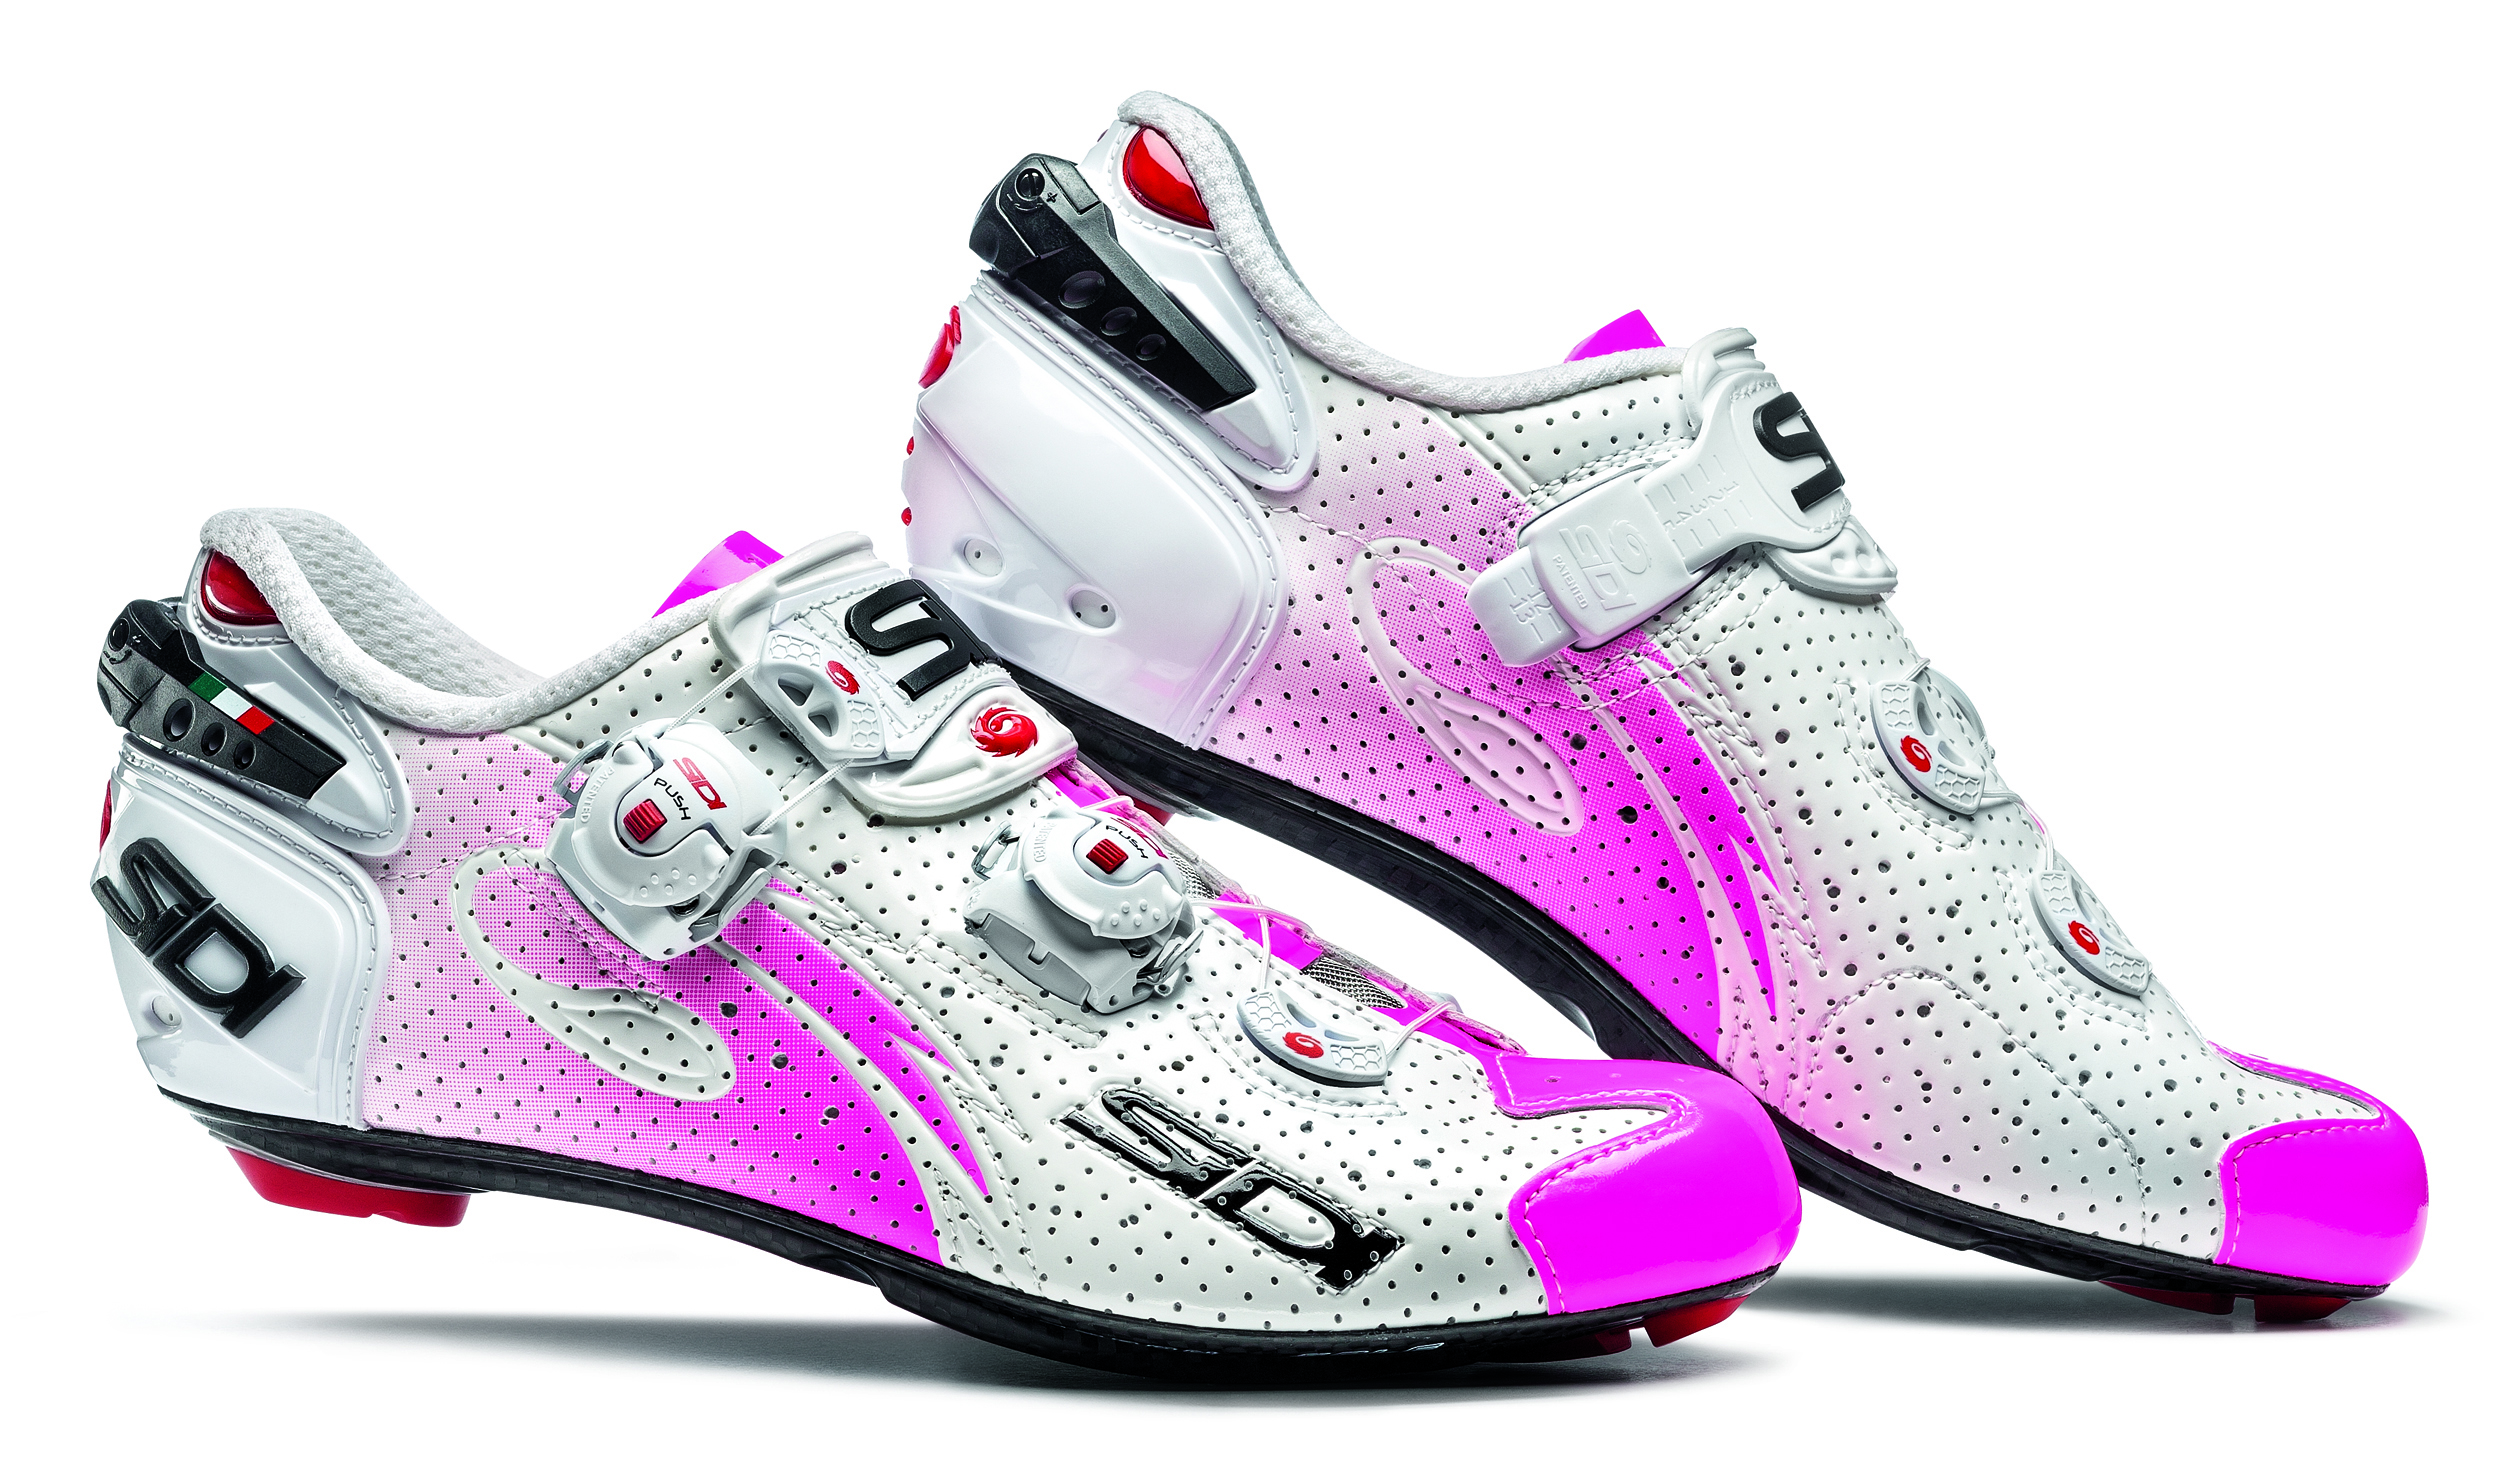 Vernice Shoes | Sidi Wire Carbon Vernice | Sidi Cycling Shoes Review